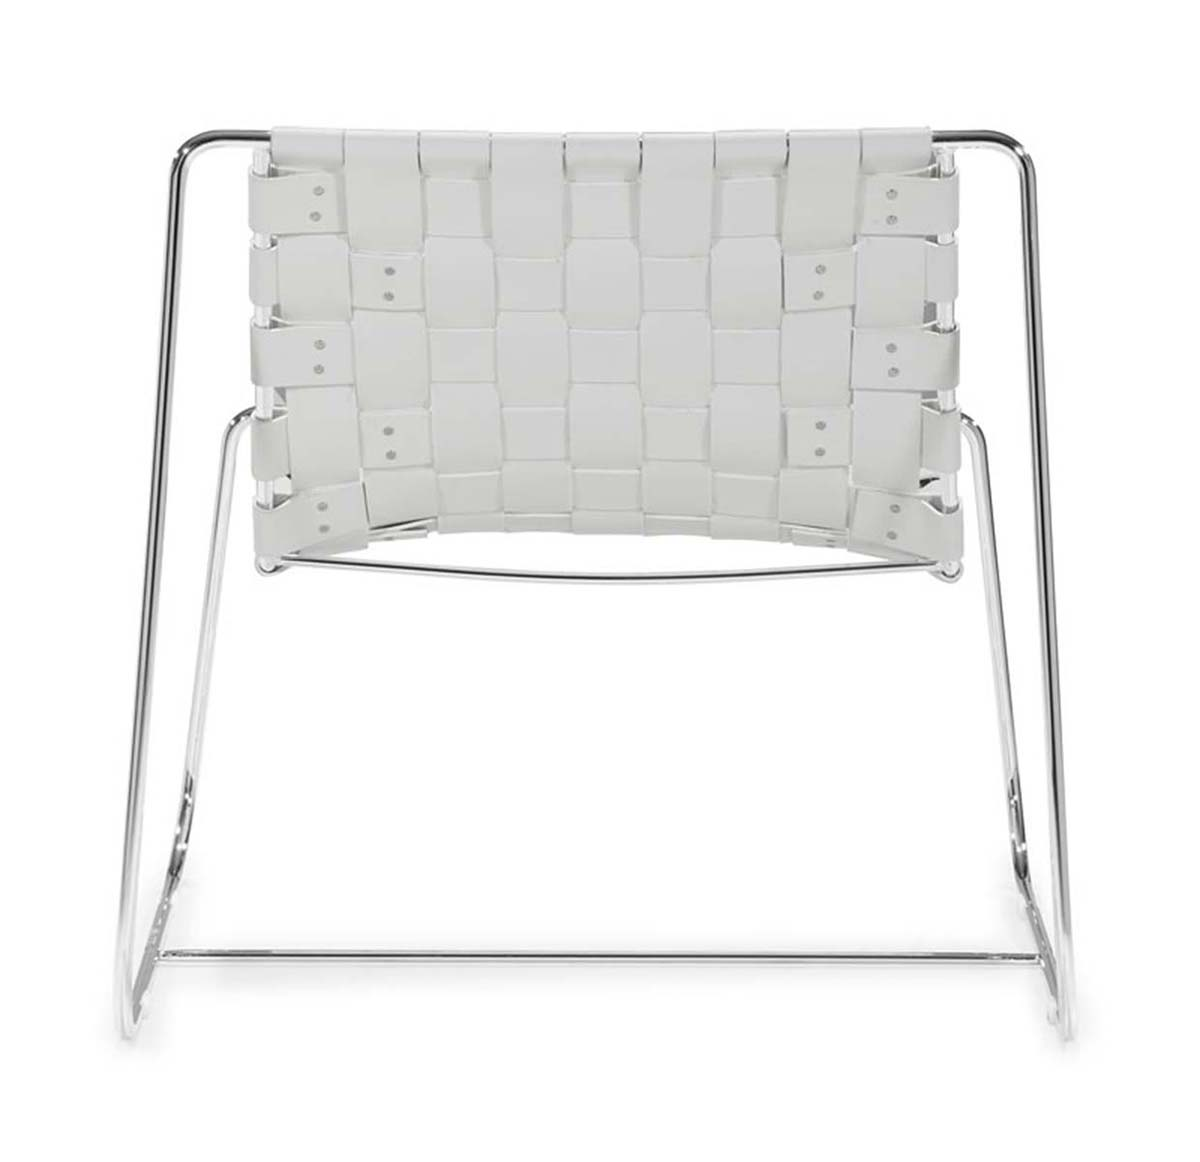 Zuo Modern Prospect Park Lounge Chair - White